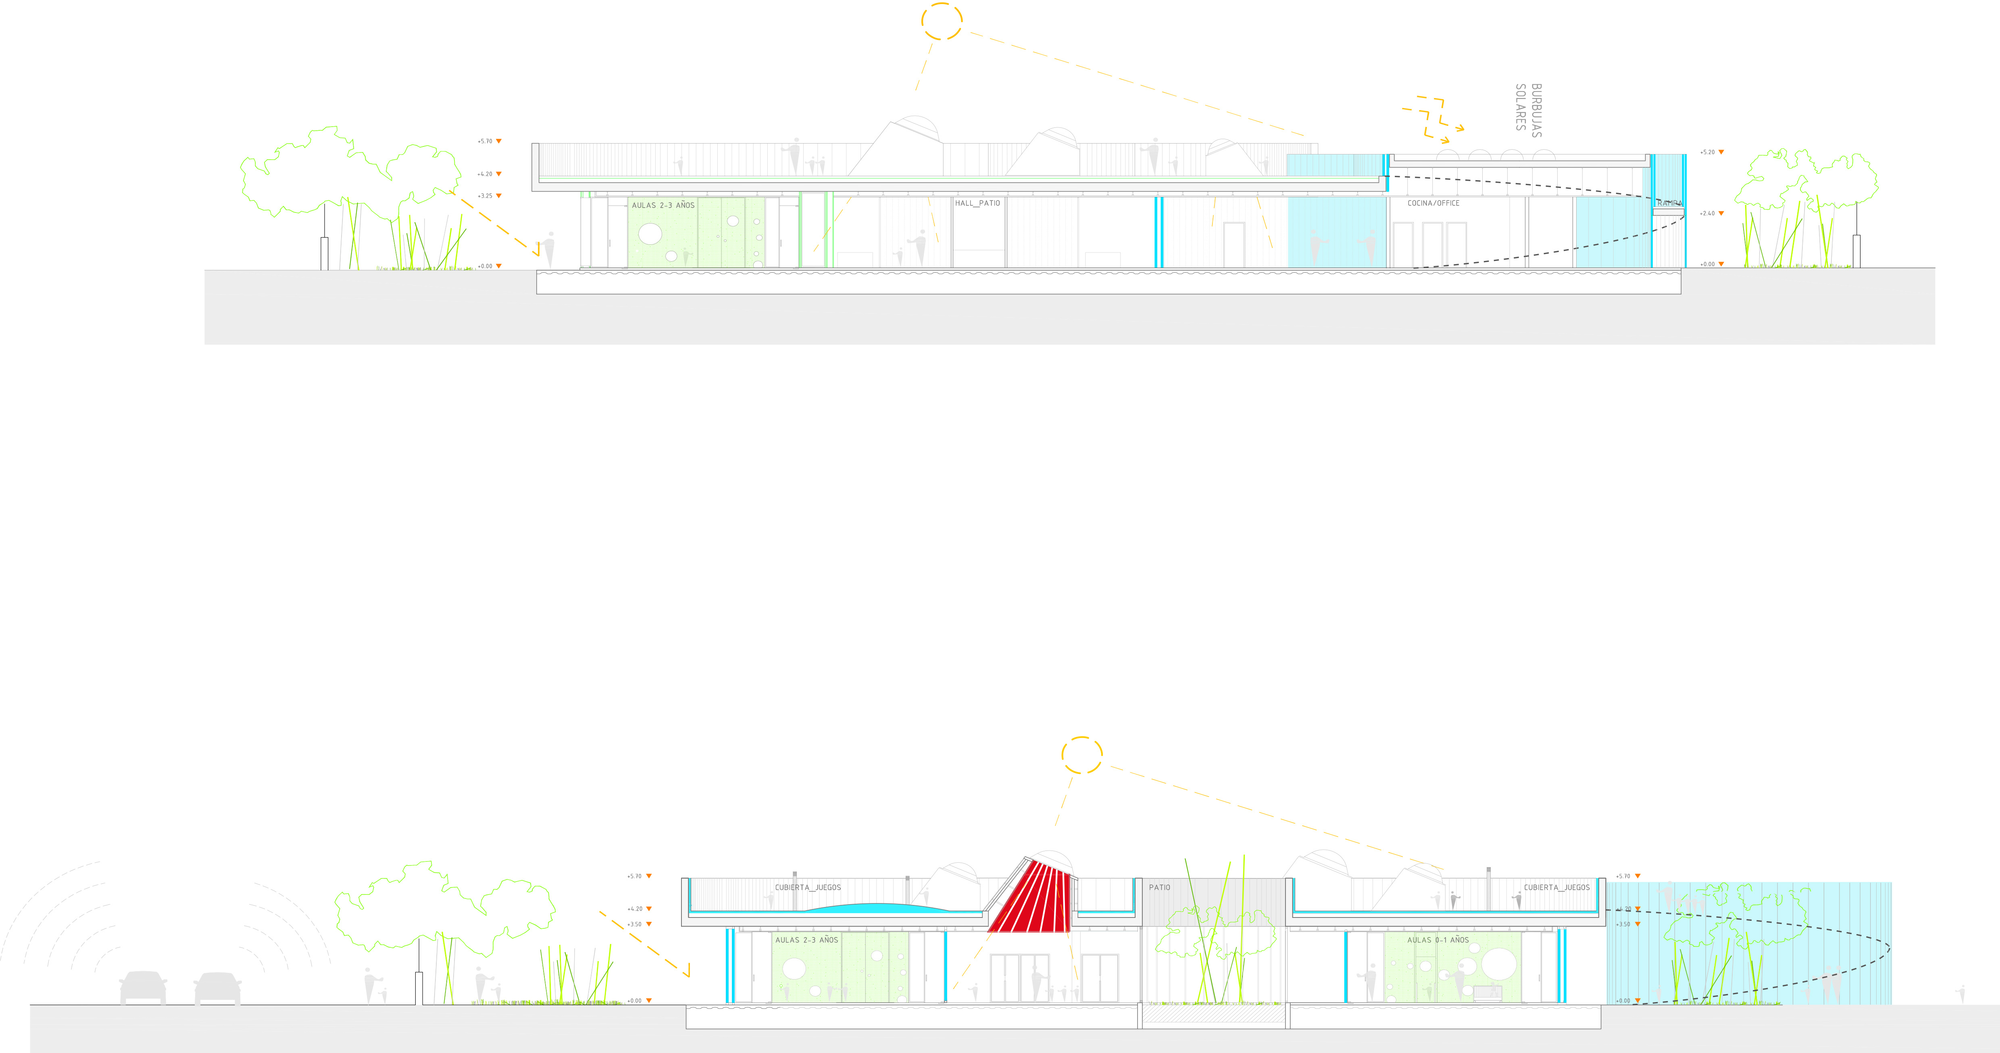 http://ad009cdnb.archdaily.net/wp-content/uploads/2013/04/516896deb3fc4b0f2600002c_infant-school-student-in-vereda-rueda-pizarro-arquitectos_section.png